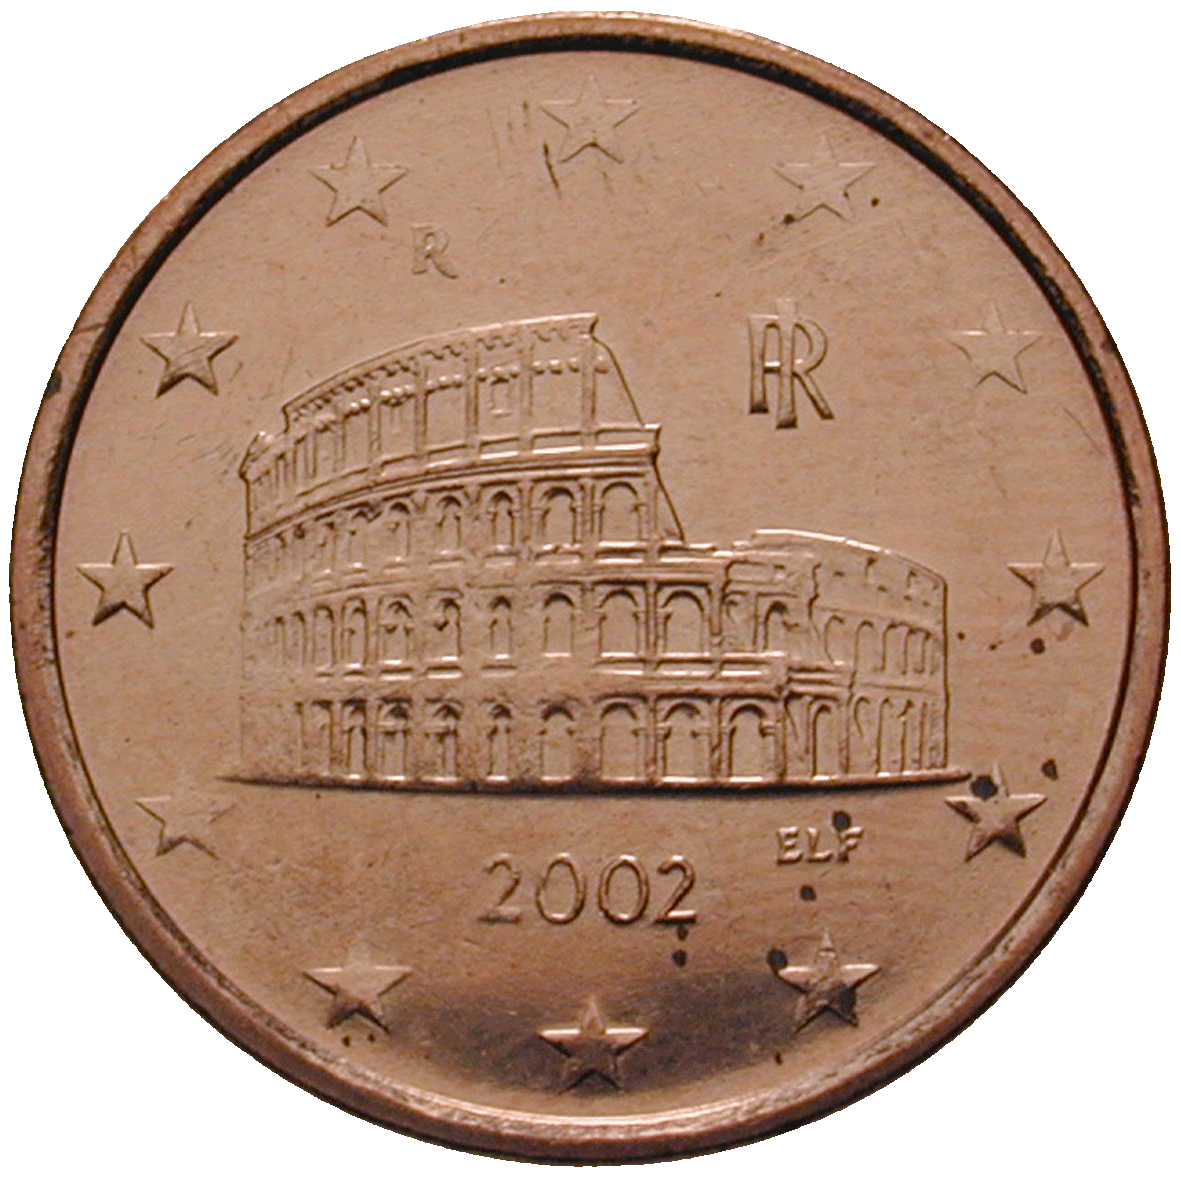 Republic of Italy, 5 Euro Cent 2002 (obverse)